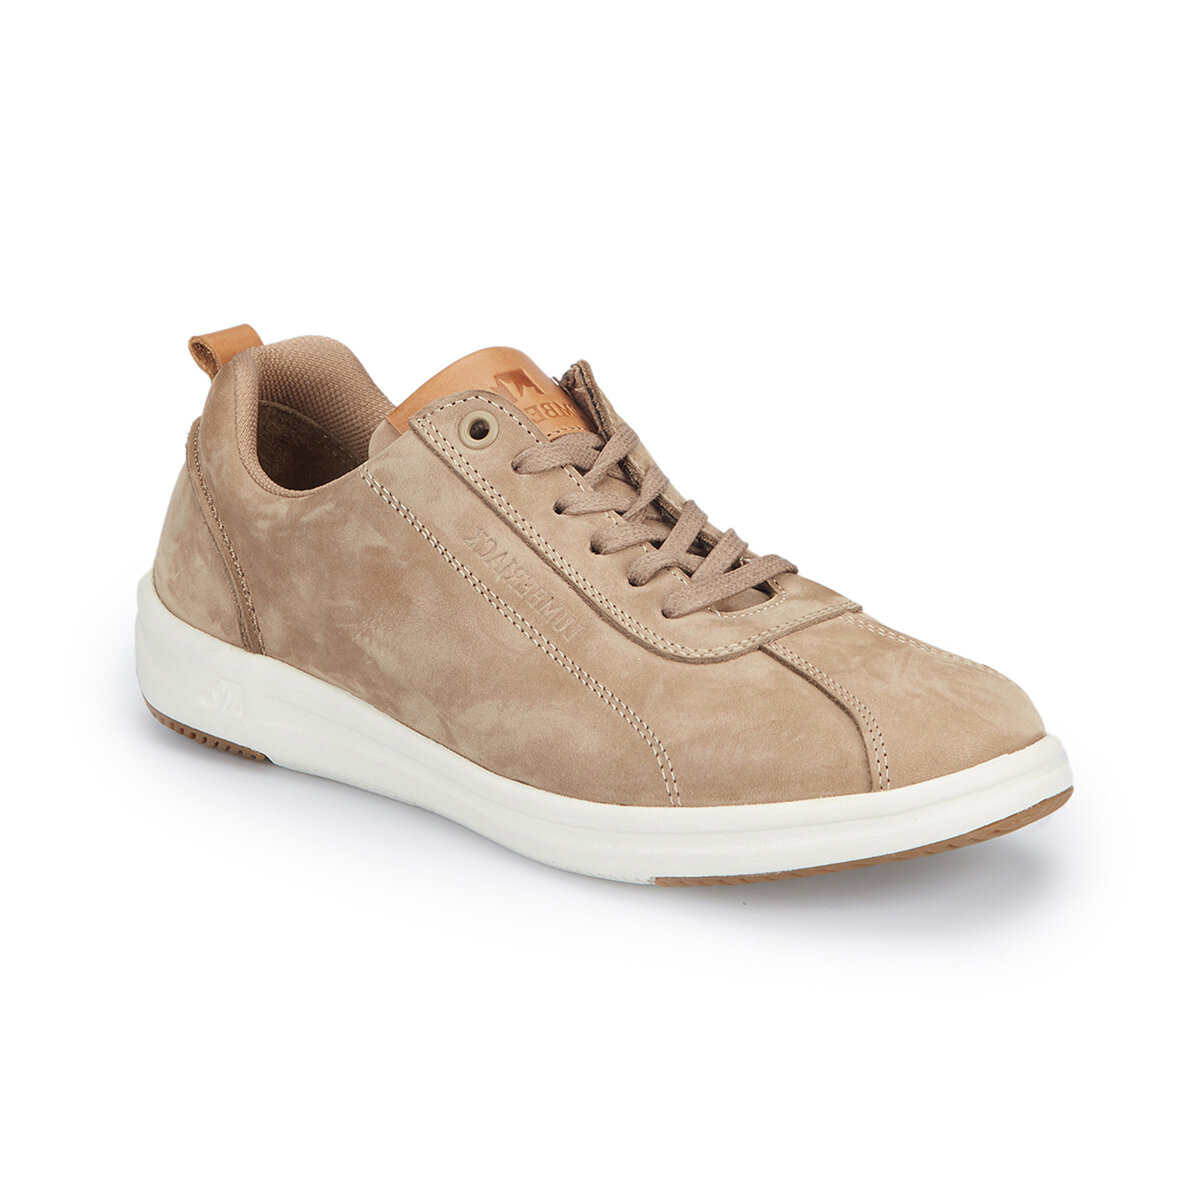 FLO ROGERA NUB Sand Color Male Sneaker Shoes LUMBERJACK